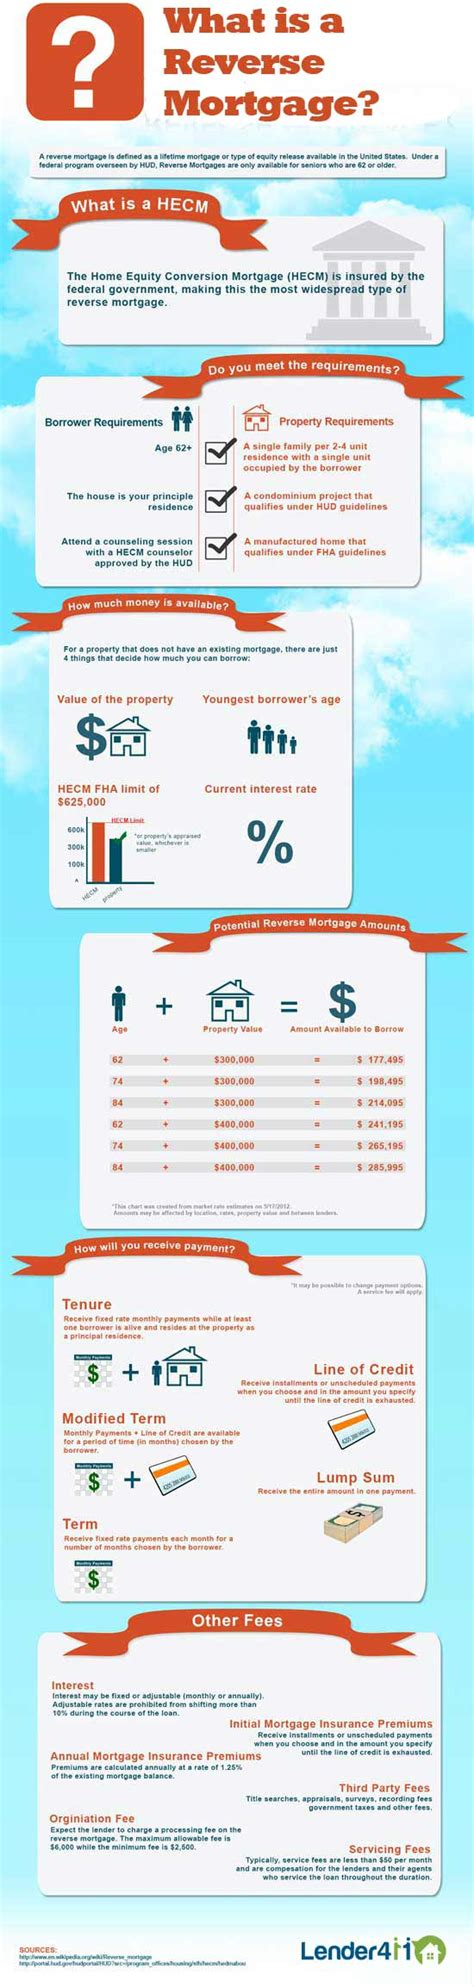 Mortgage Search By Address Infographic Mortgage Lender411